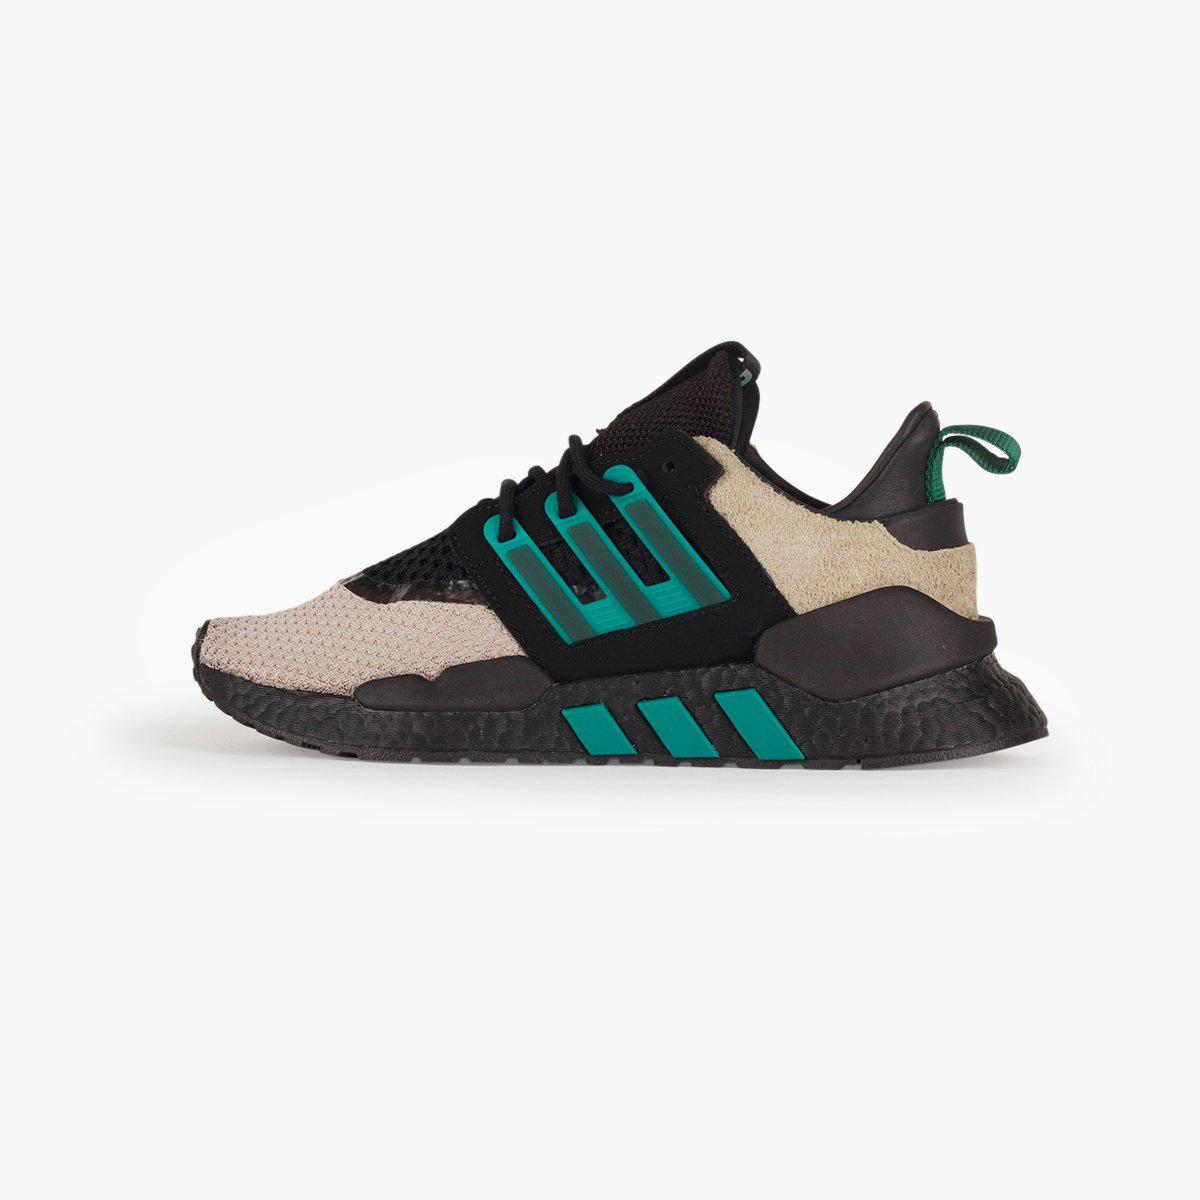 7f35e17be0a8d Adidas Originals X Packer Shoes Eqt 91 18 for Men - Lyst